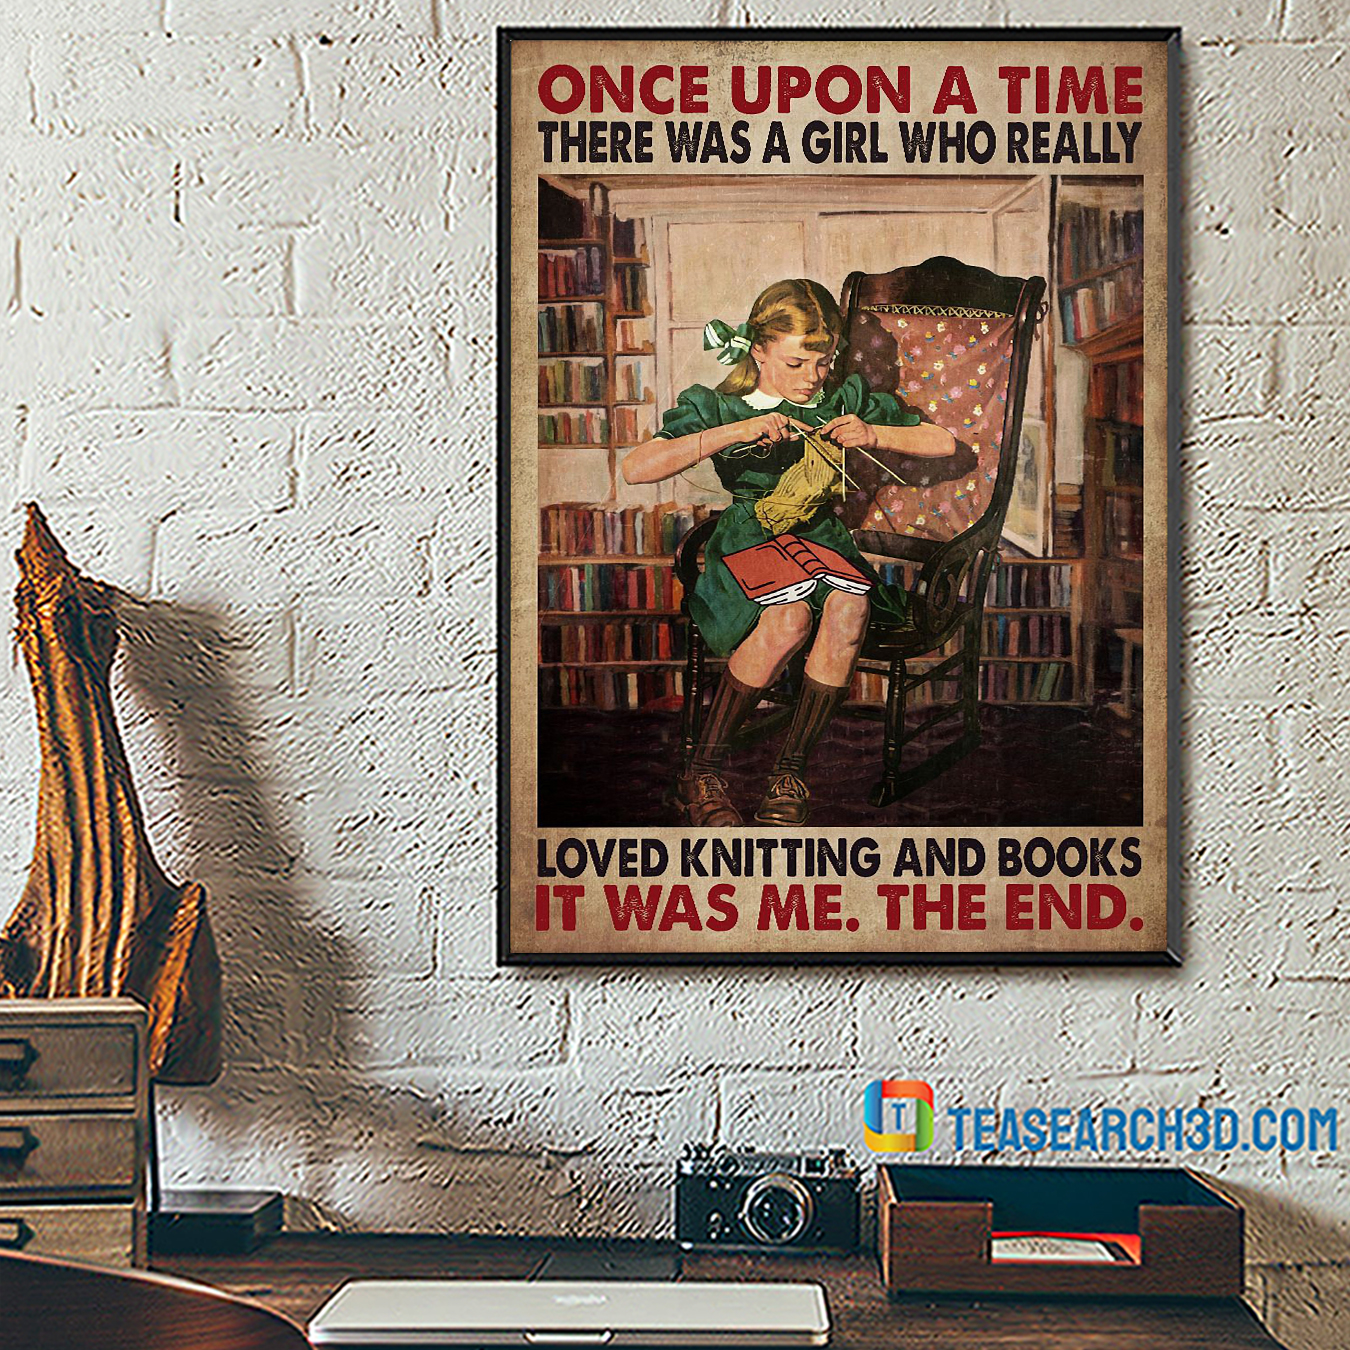 Once upon a time there was a girl who really loved knitting and books poster A3